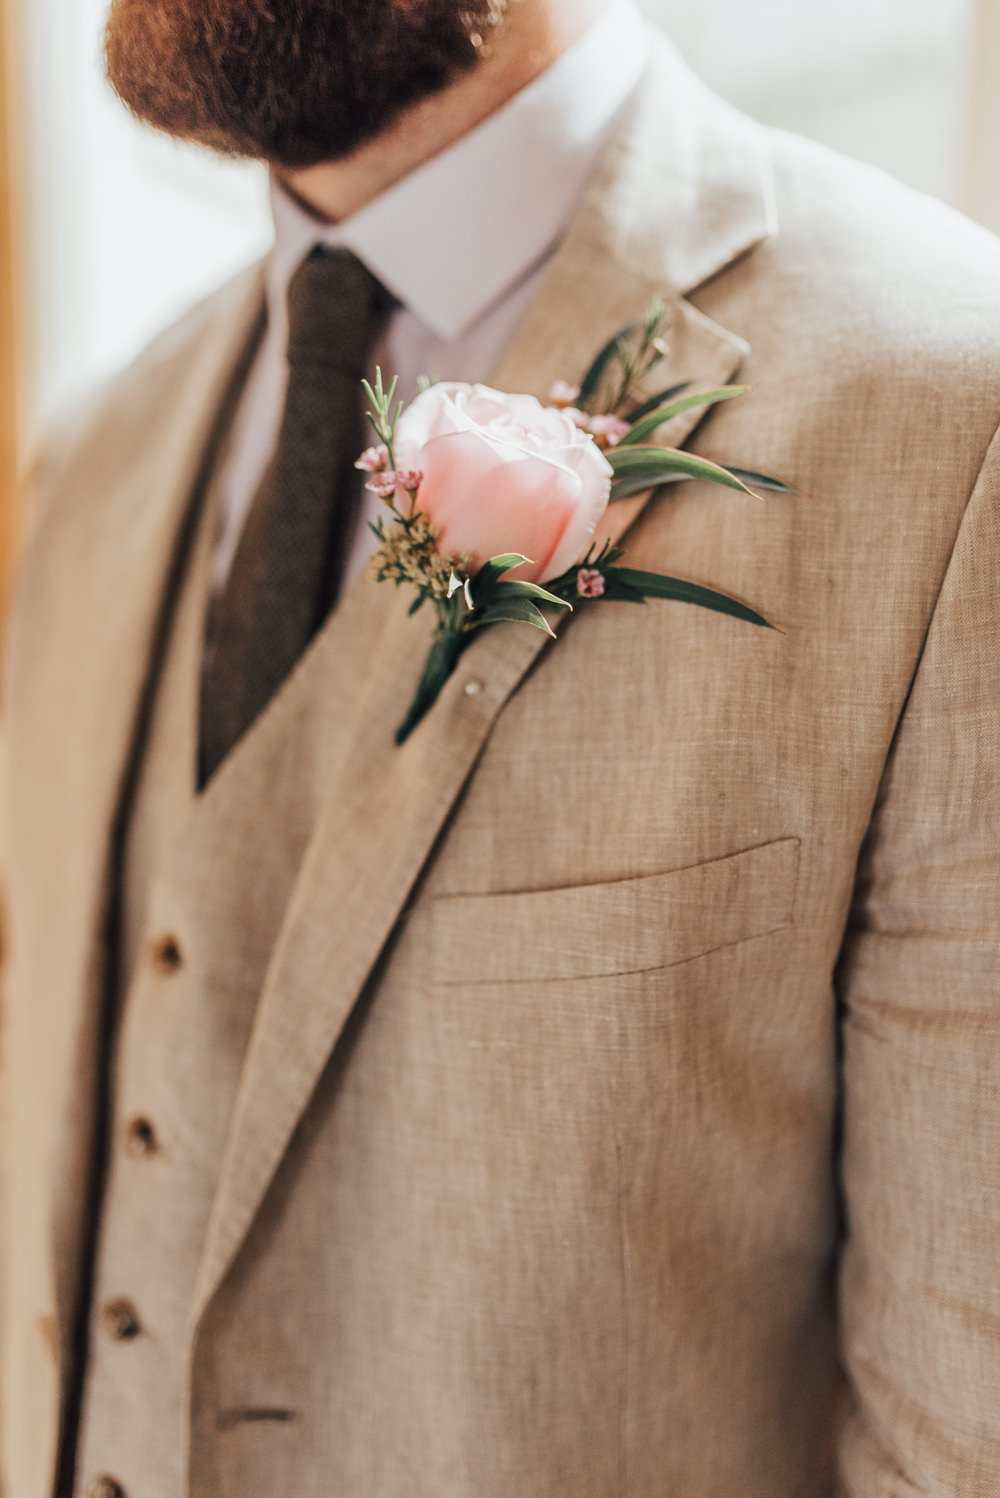 Groom Suit Pale Sand Linen Tweed Tie Pink Rose Buttonhole Loafers Beacon House Wedding Elopement Rebecca Carpenter Photography